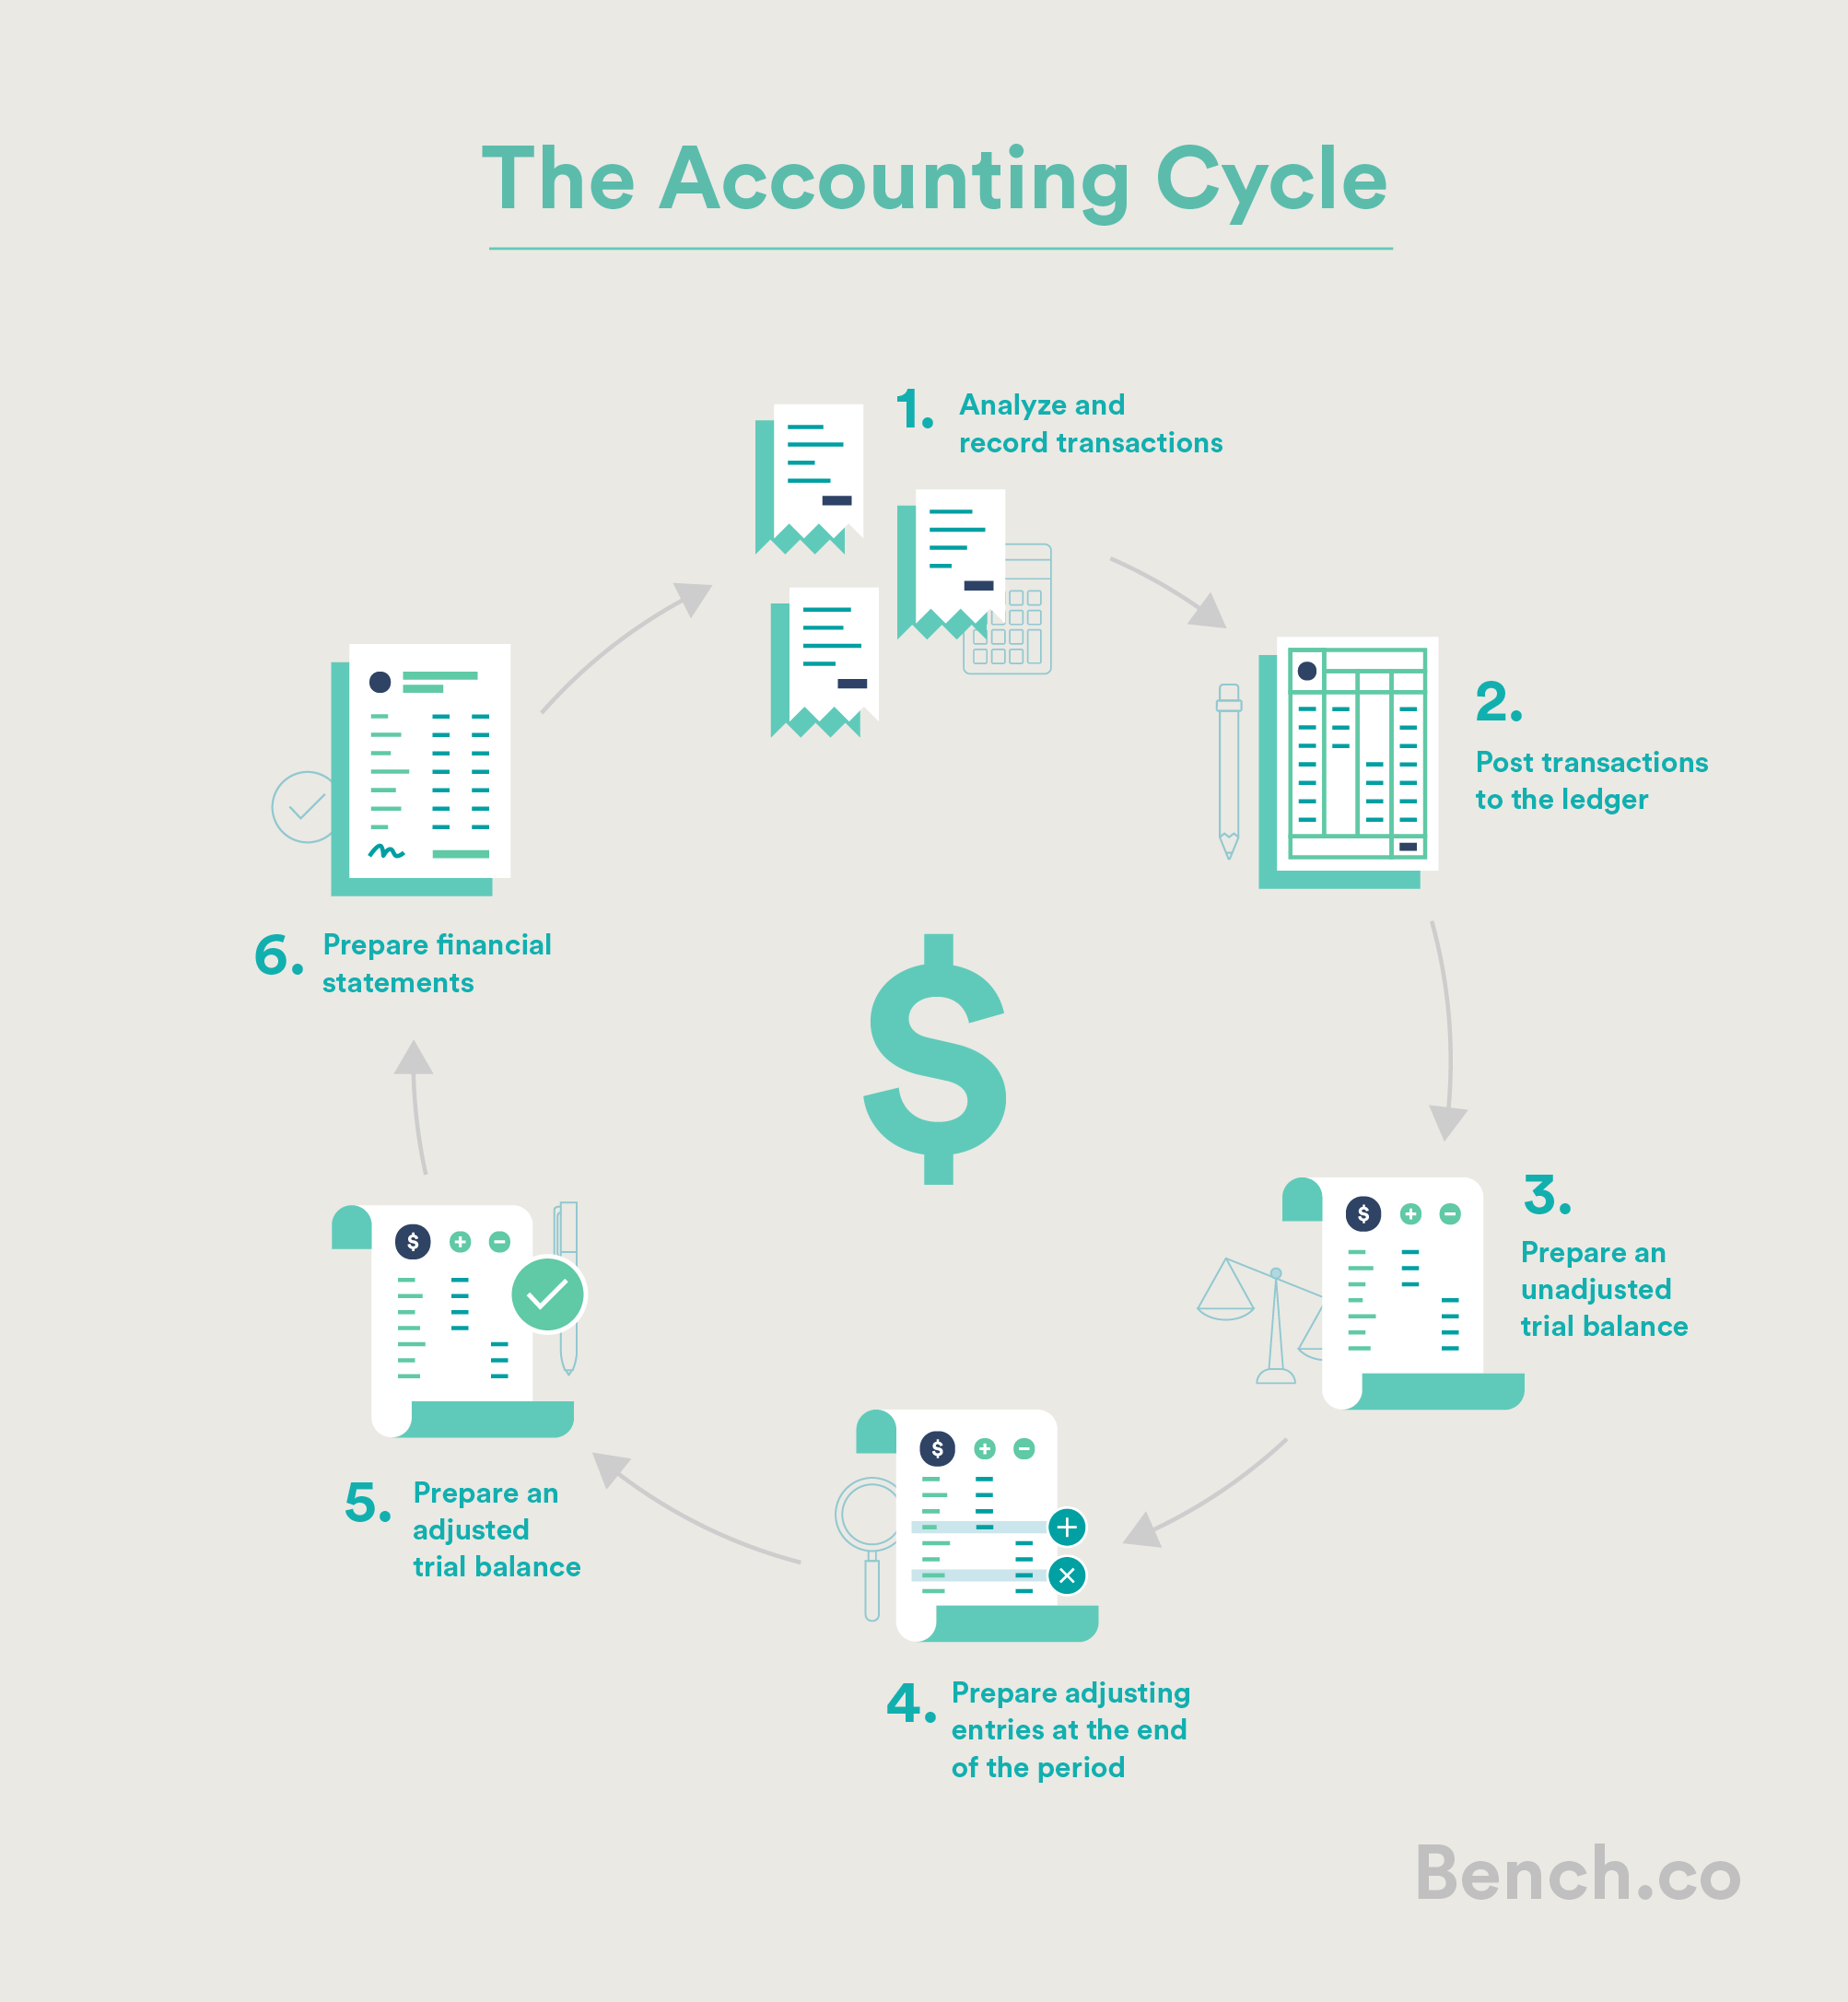 Bench-Accounting-Cycle-Captions-2